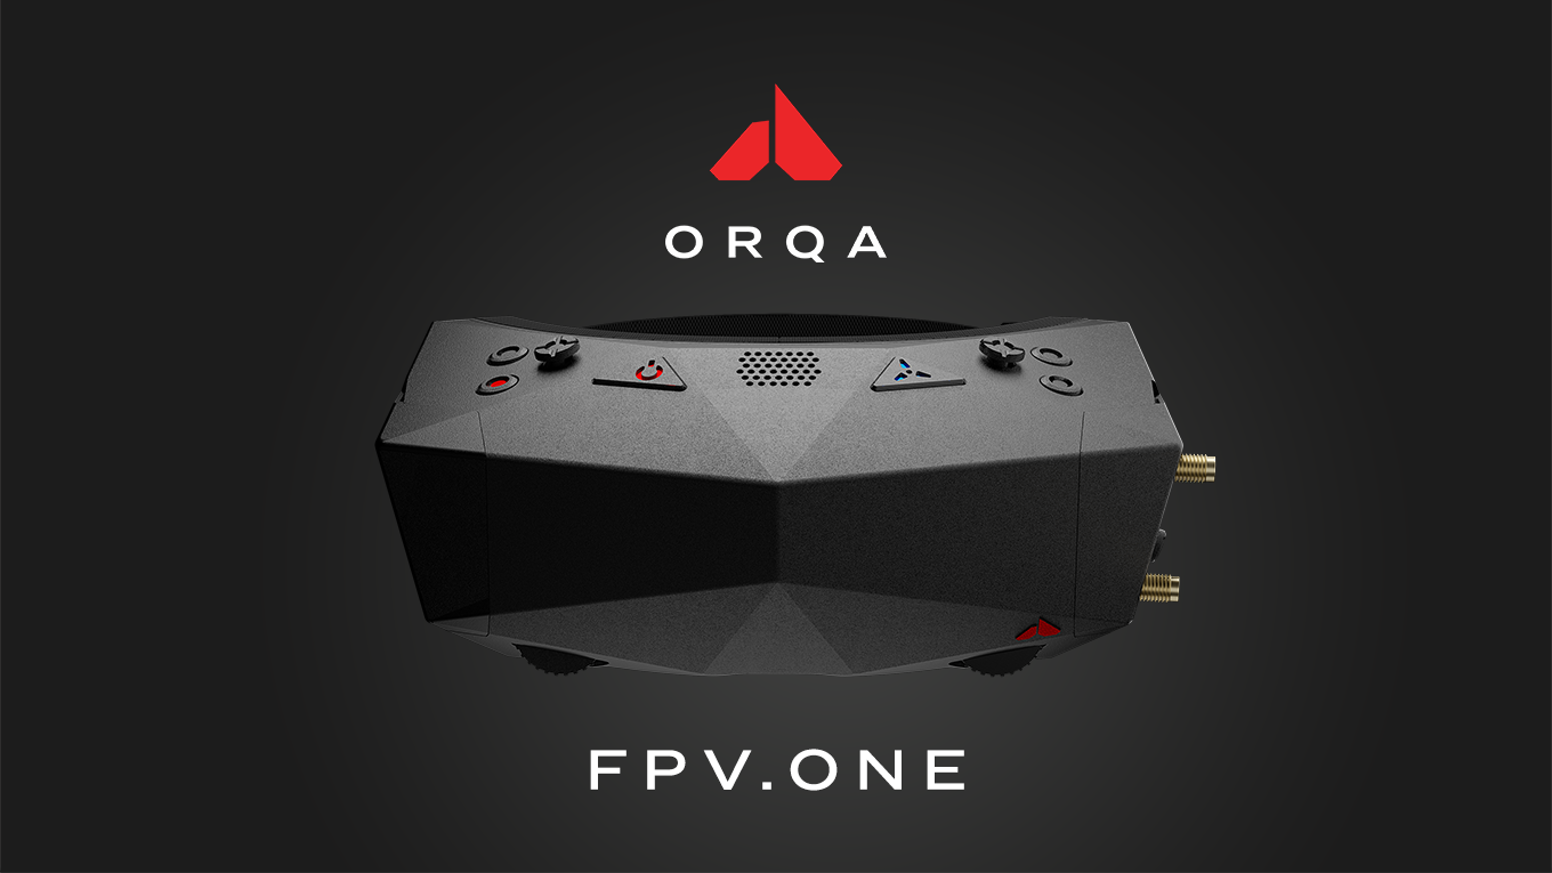 Orqa FPV.One - Most exciting and innovative FPV Goggles for FPV simulations, drone  racing and freestyle